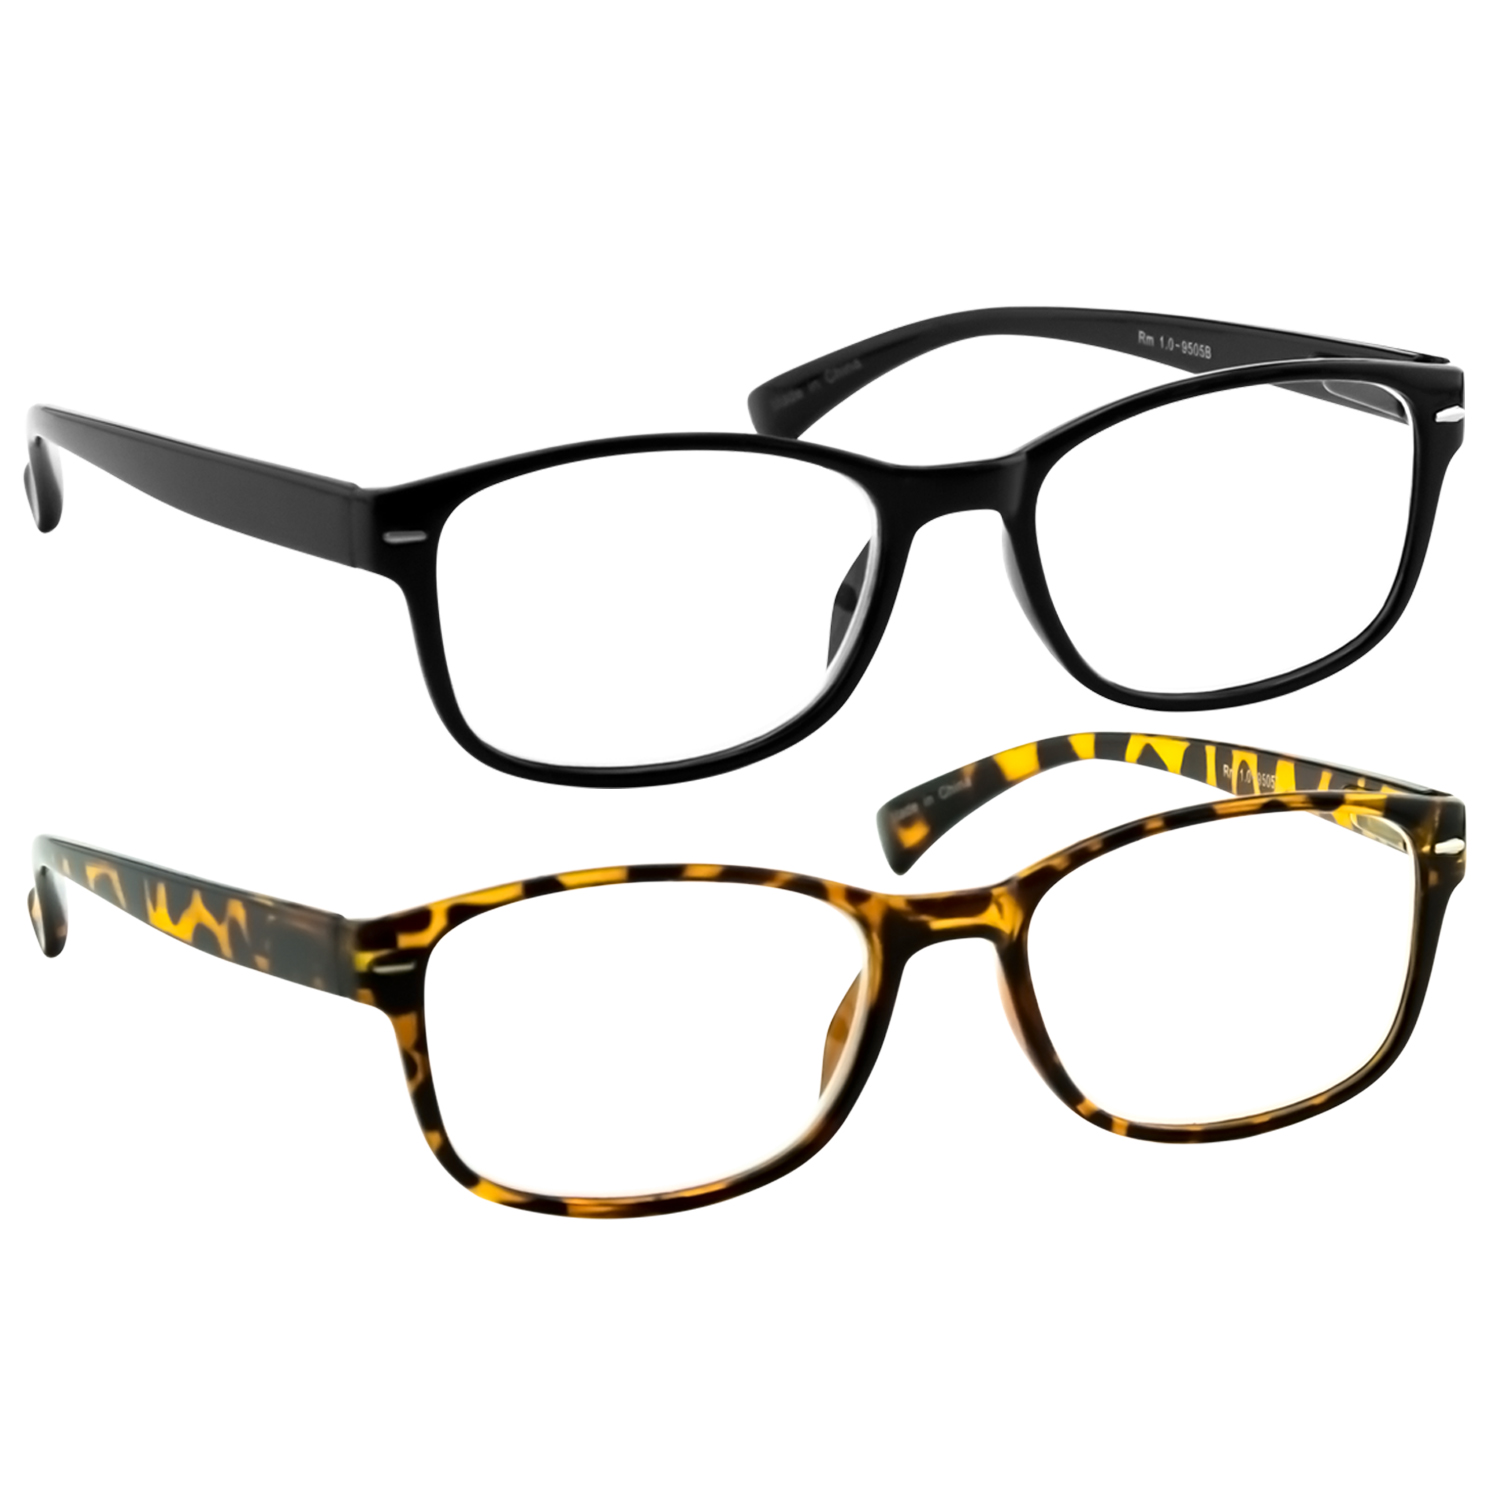 Reading Glasses 2 Pack | Always Have a Timeless Look, Crystal Clear Vision, Comfort Fit With Sure-Flex Spring Hinge Arms & Dura-Tight Screws